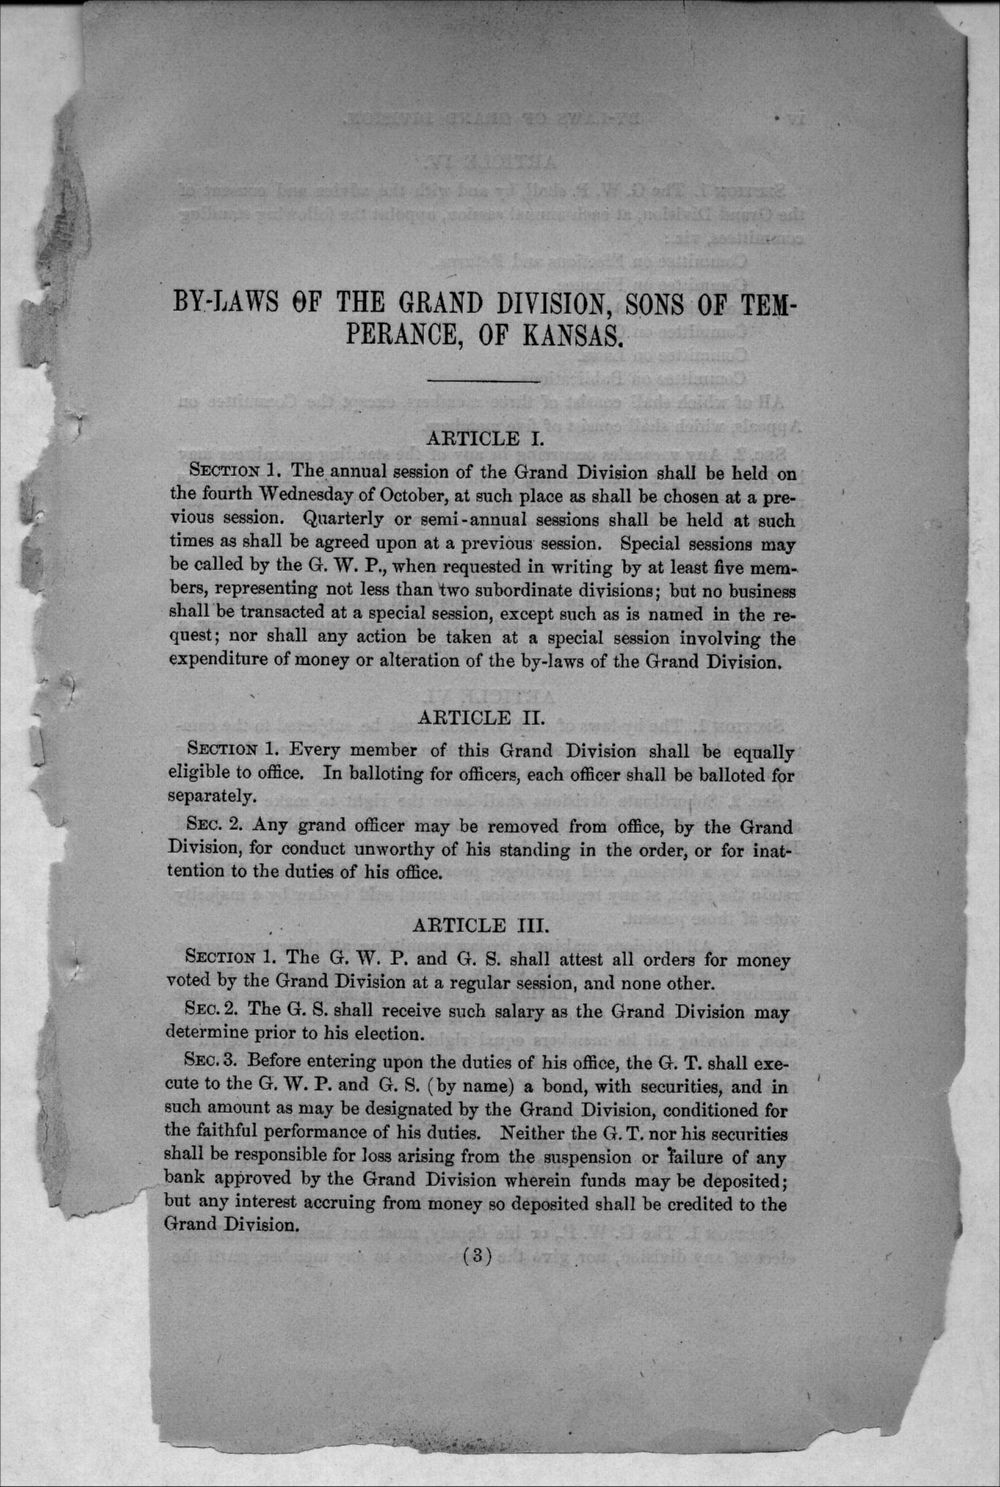 Journal of proceedings of the Grand Division of the Sons of Temperance of Kansas - 3